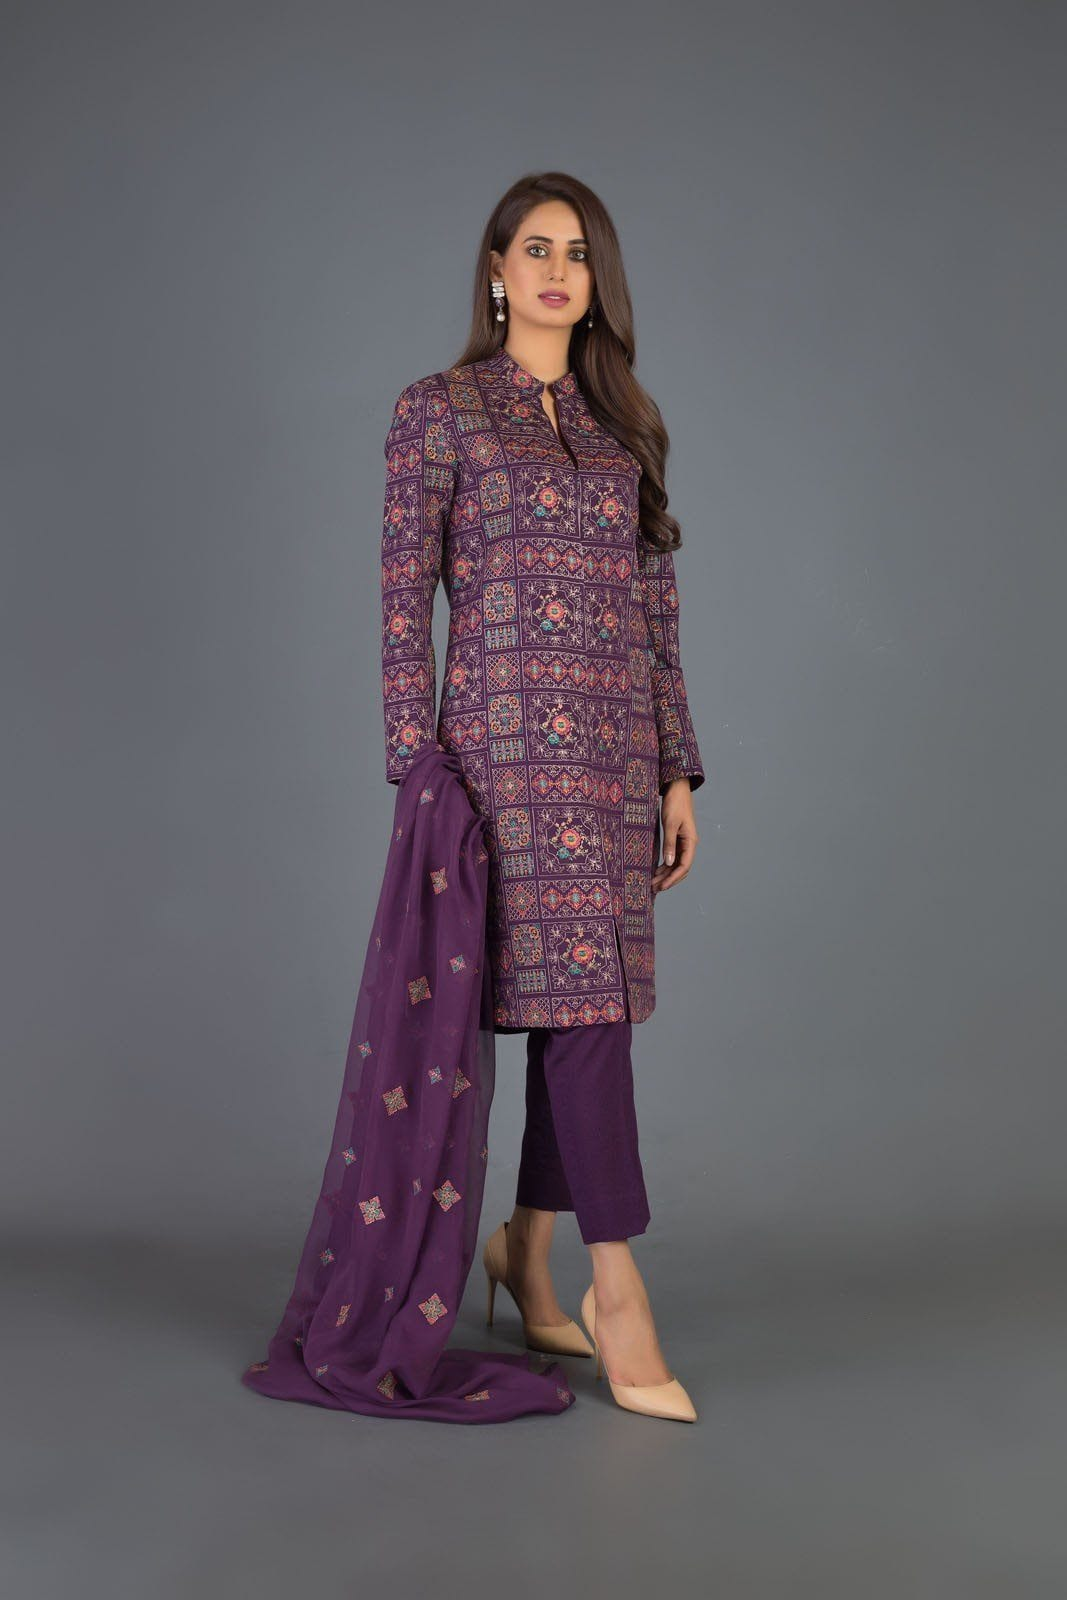 Sarinnah D51-Heavy Embroided 3pc khaddar dress with chiffon dupatta. - gracestore.pk